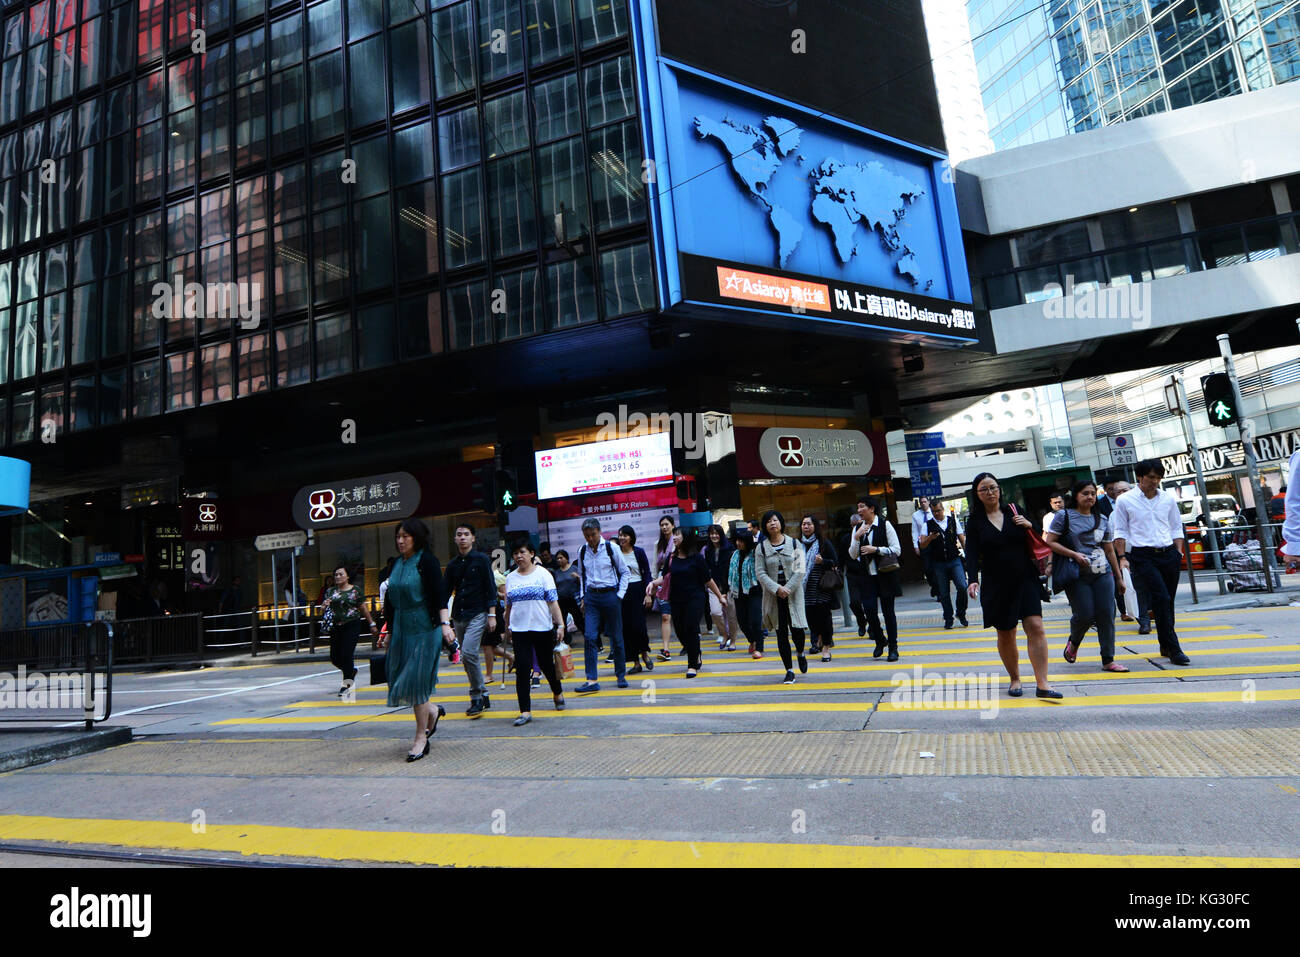 Pdestrians crossing Des Voeux Road in Central, Hong Kong. - Stock Image